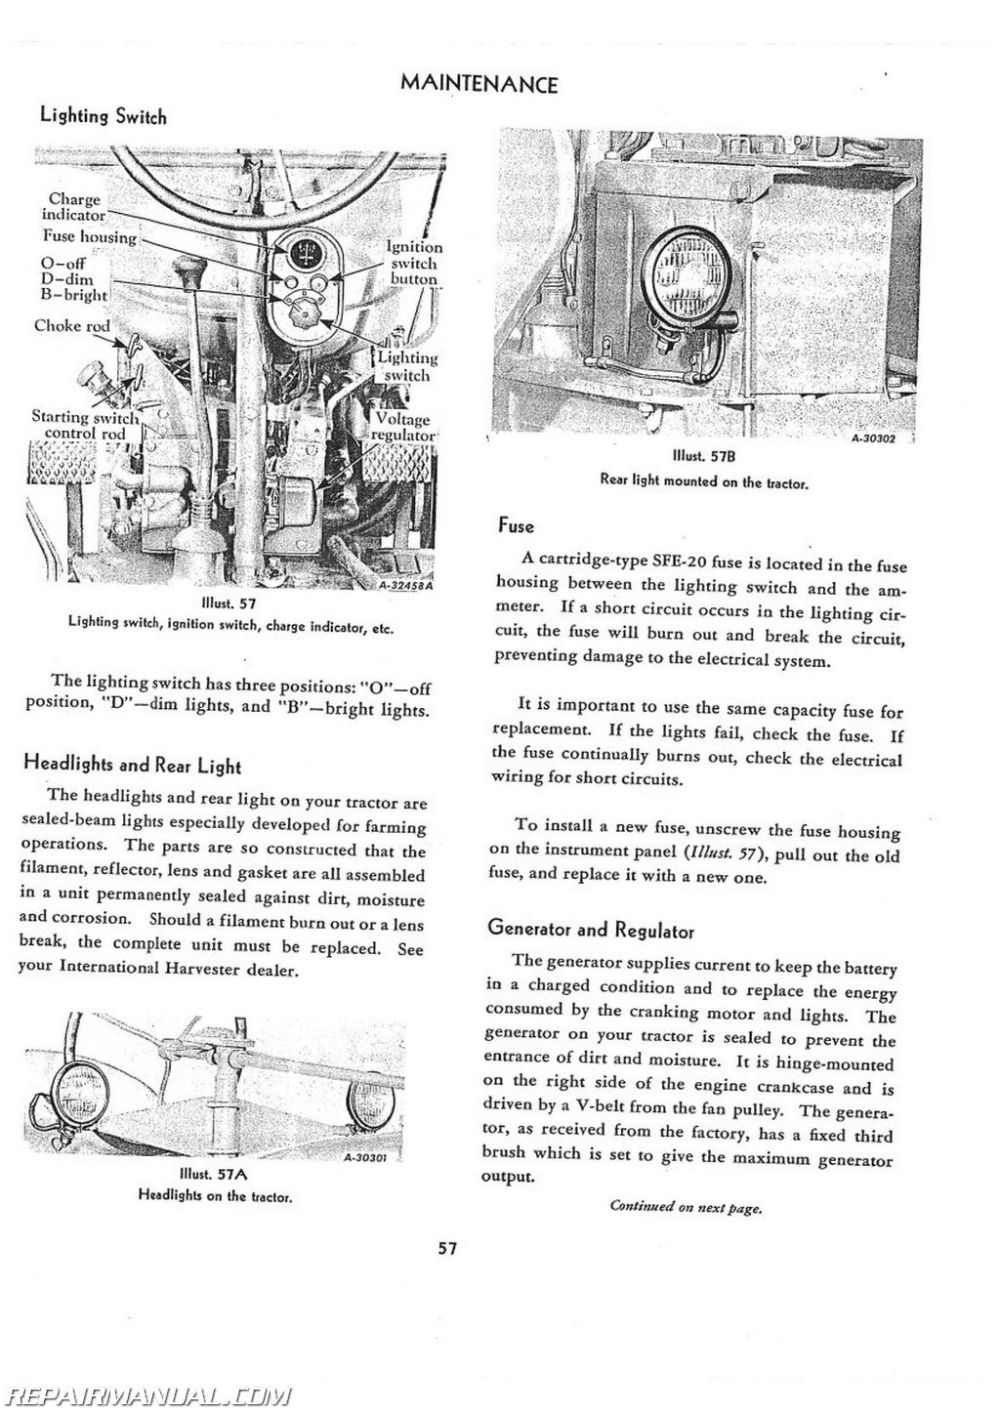 medium resolution of 1954 international farmall wiring diagram wiring library rh 54 codingcommunity de farmall super a tractor diagram